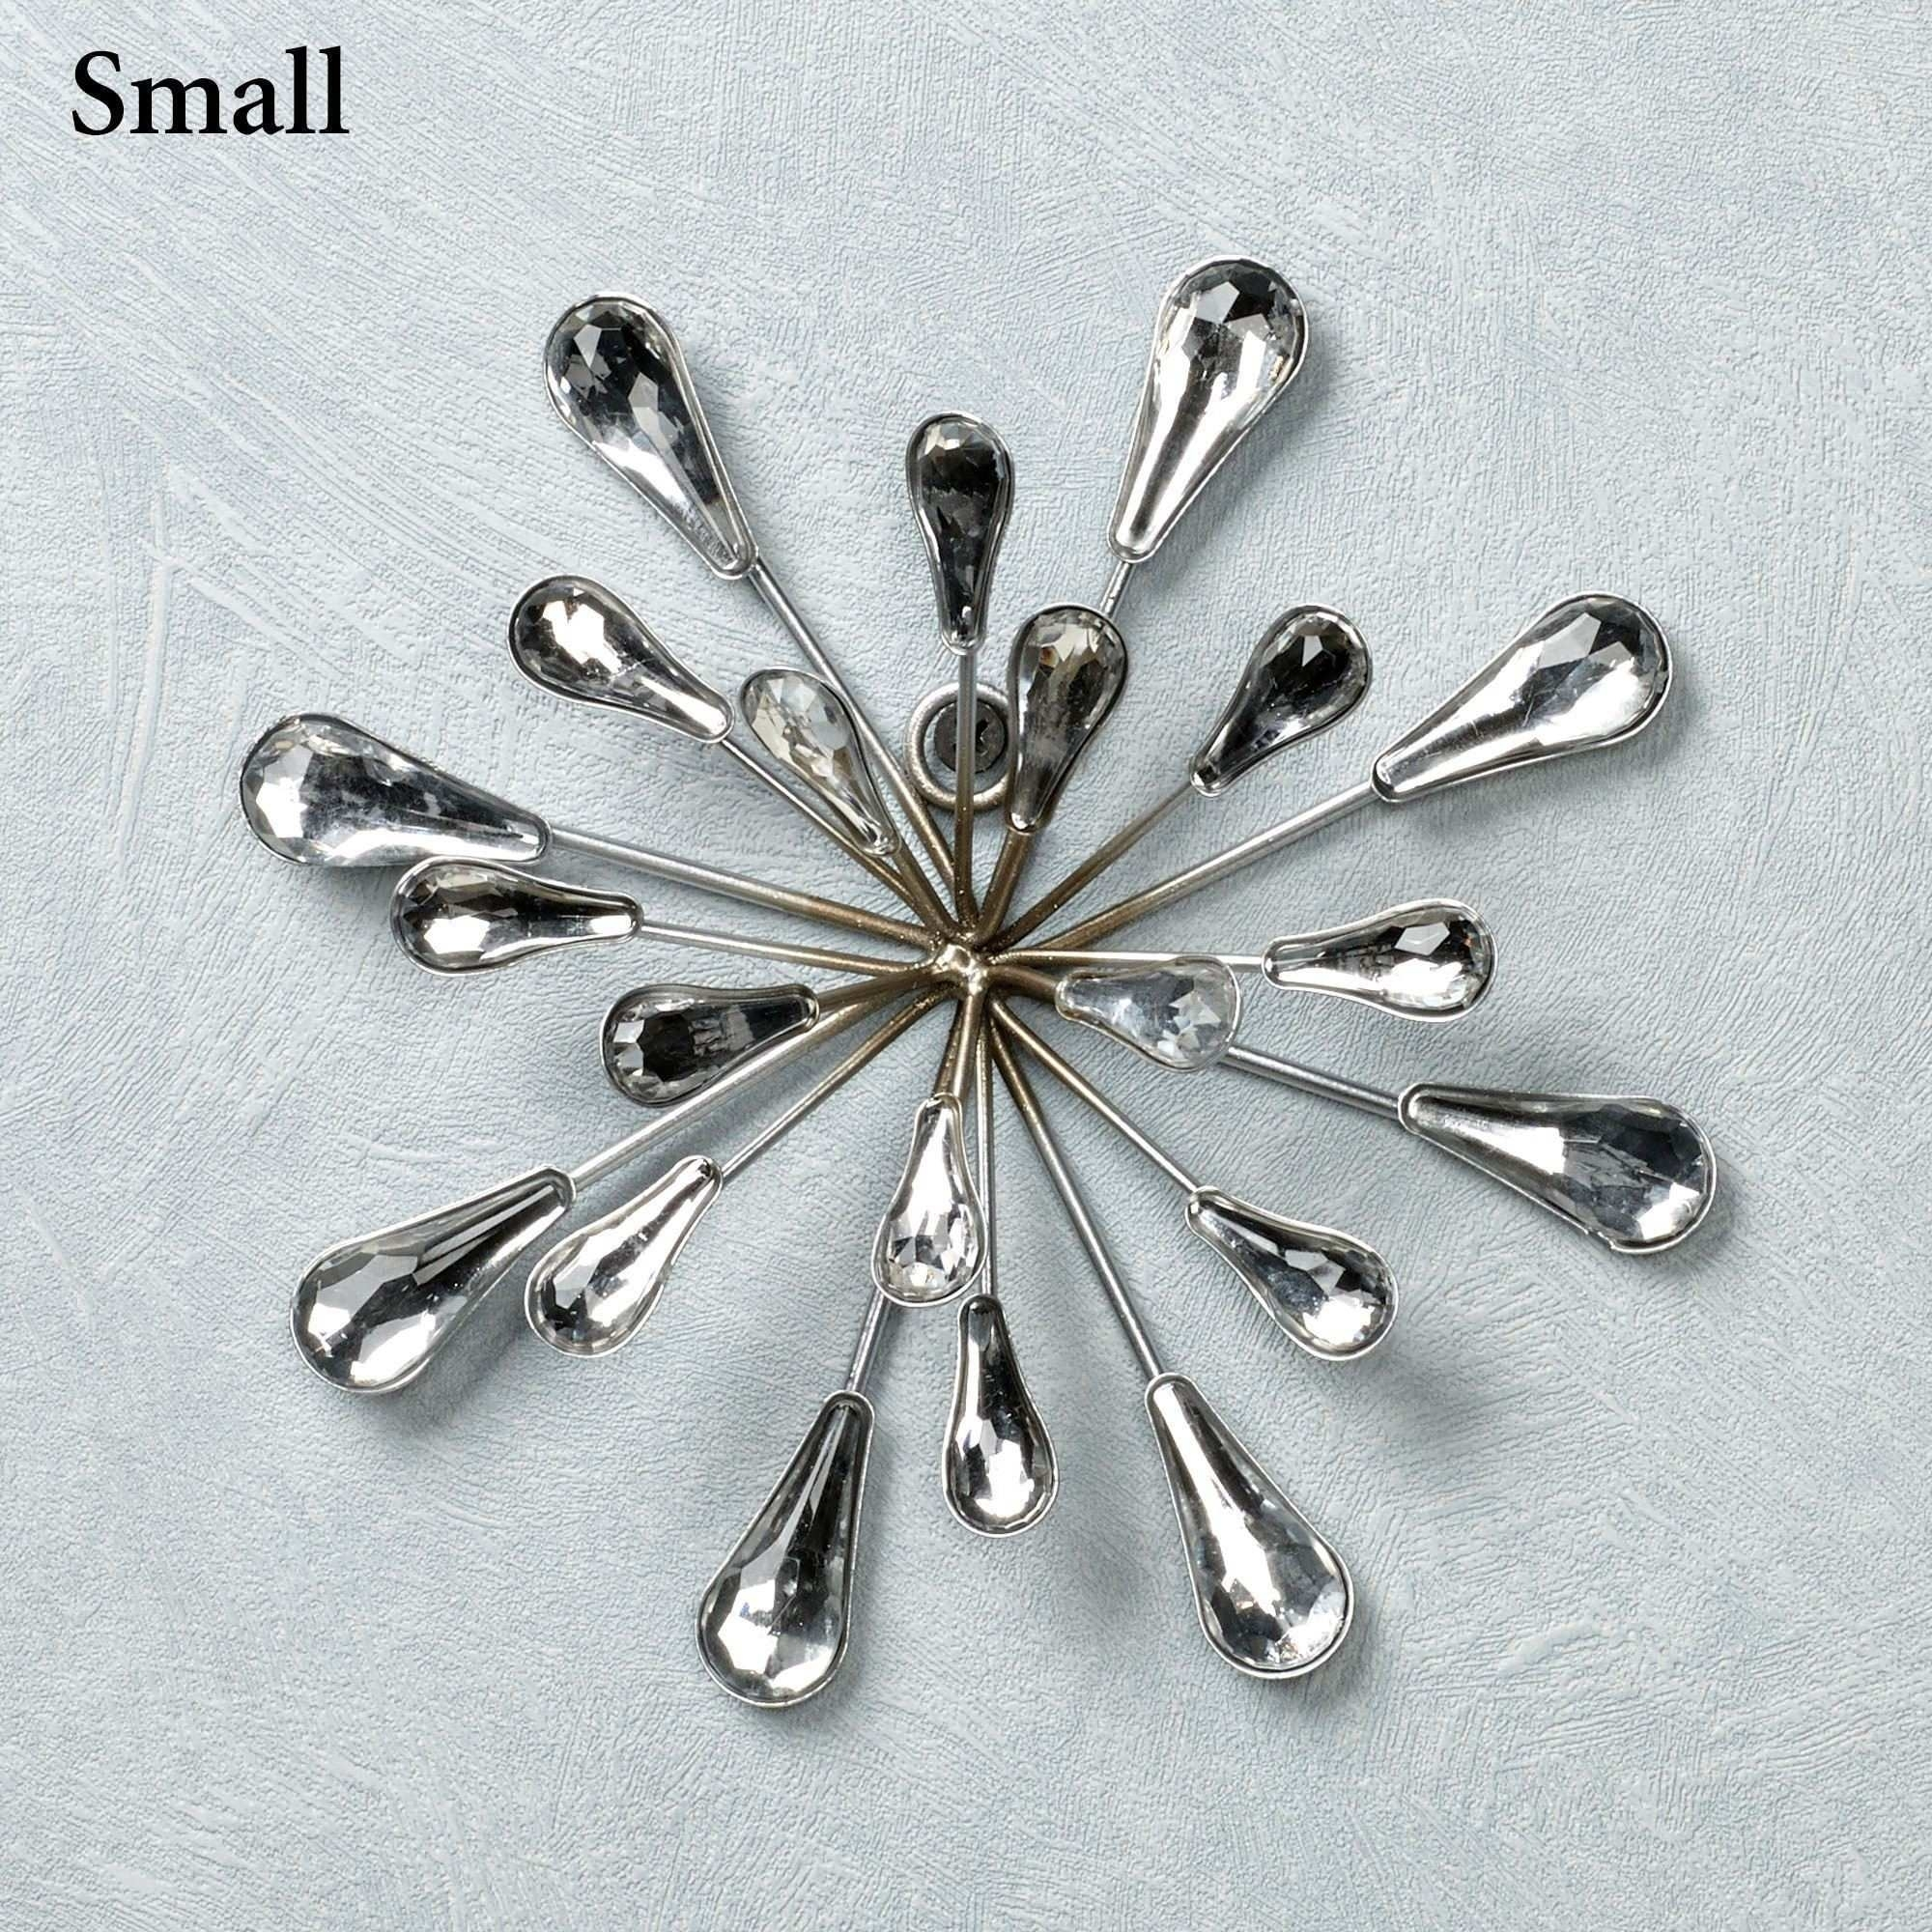 Silver Circle Metal Wall Art Unique 32 New Silver Metal Wall Decor throughout Silver Metal Wall Art (Image 13 of 20)